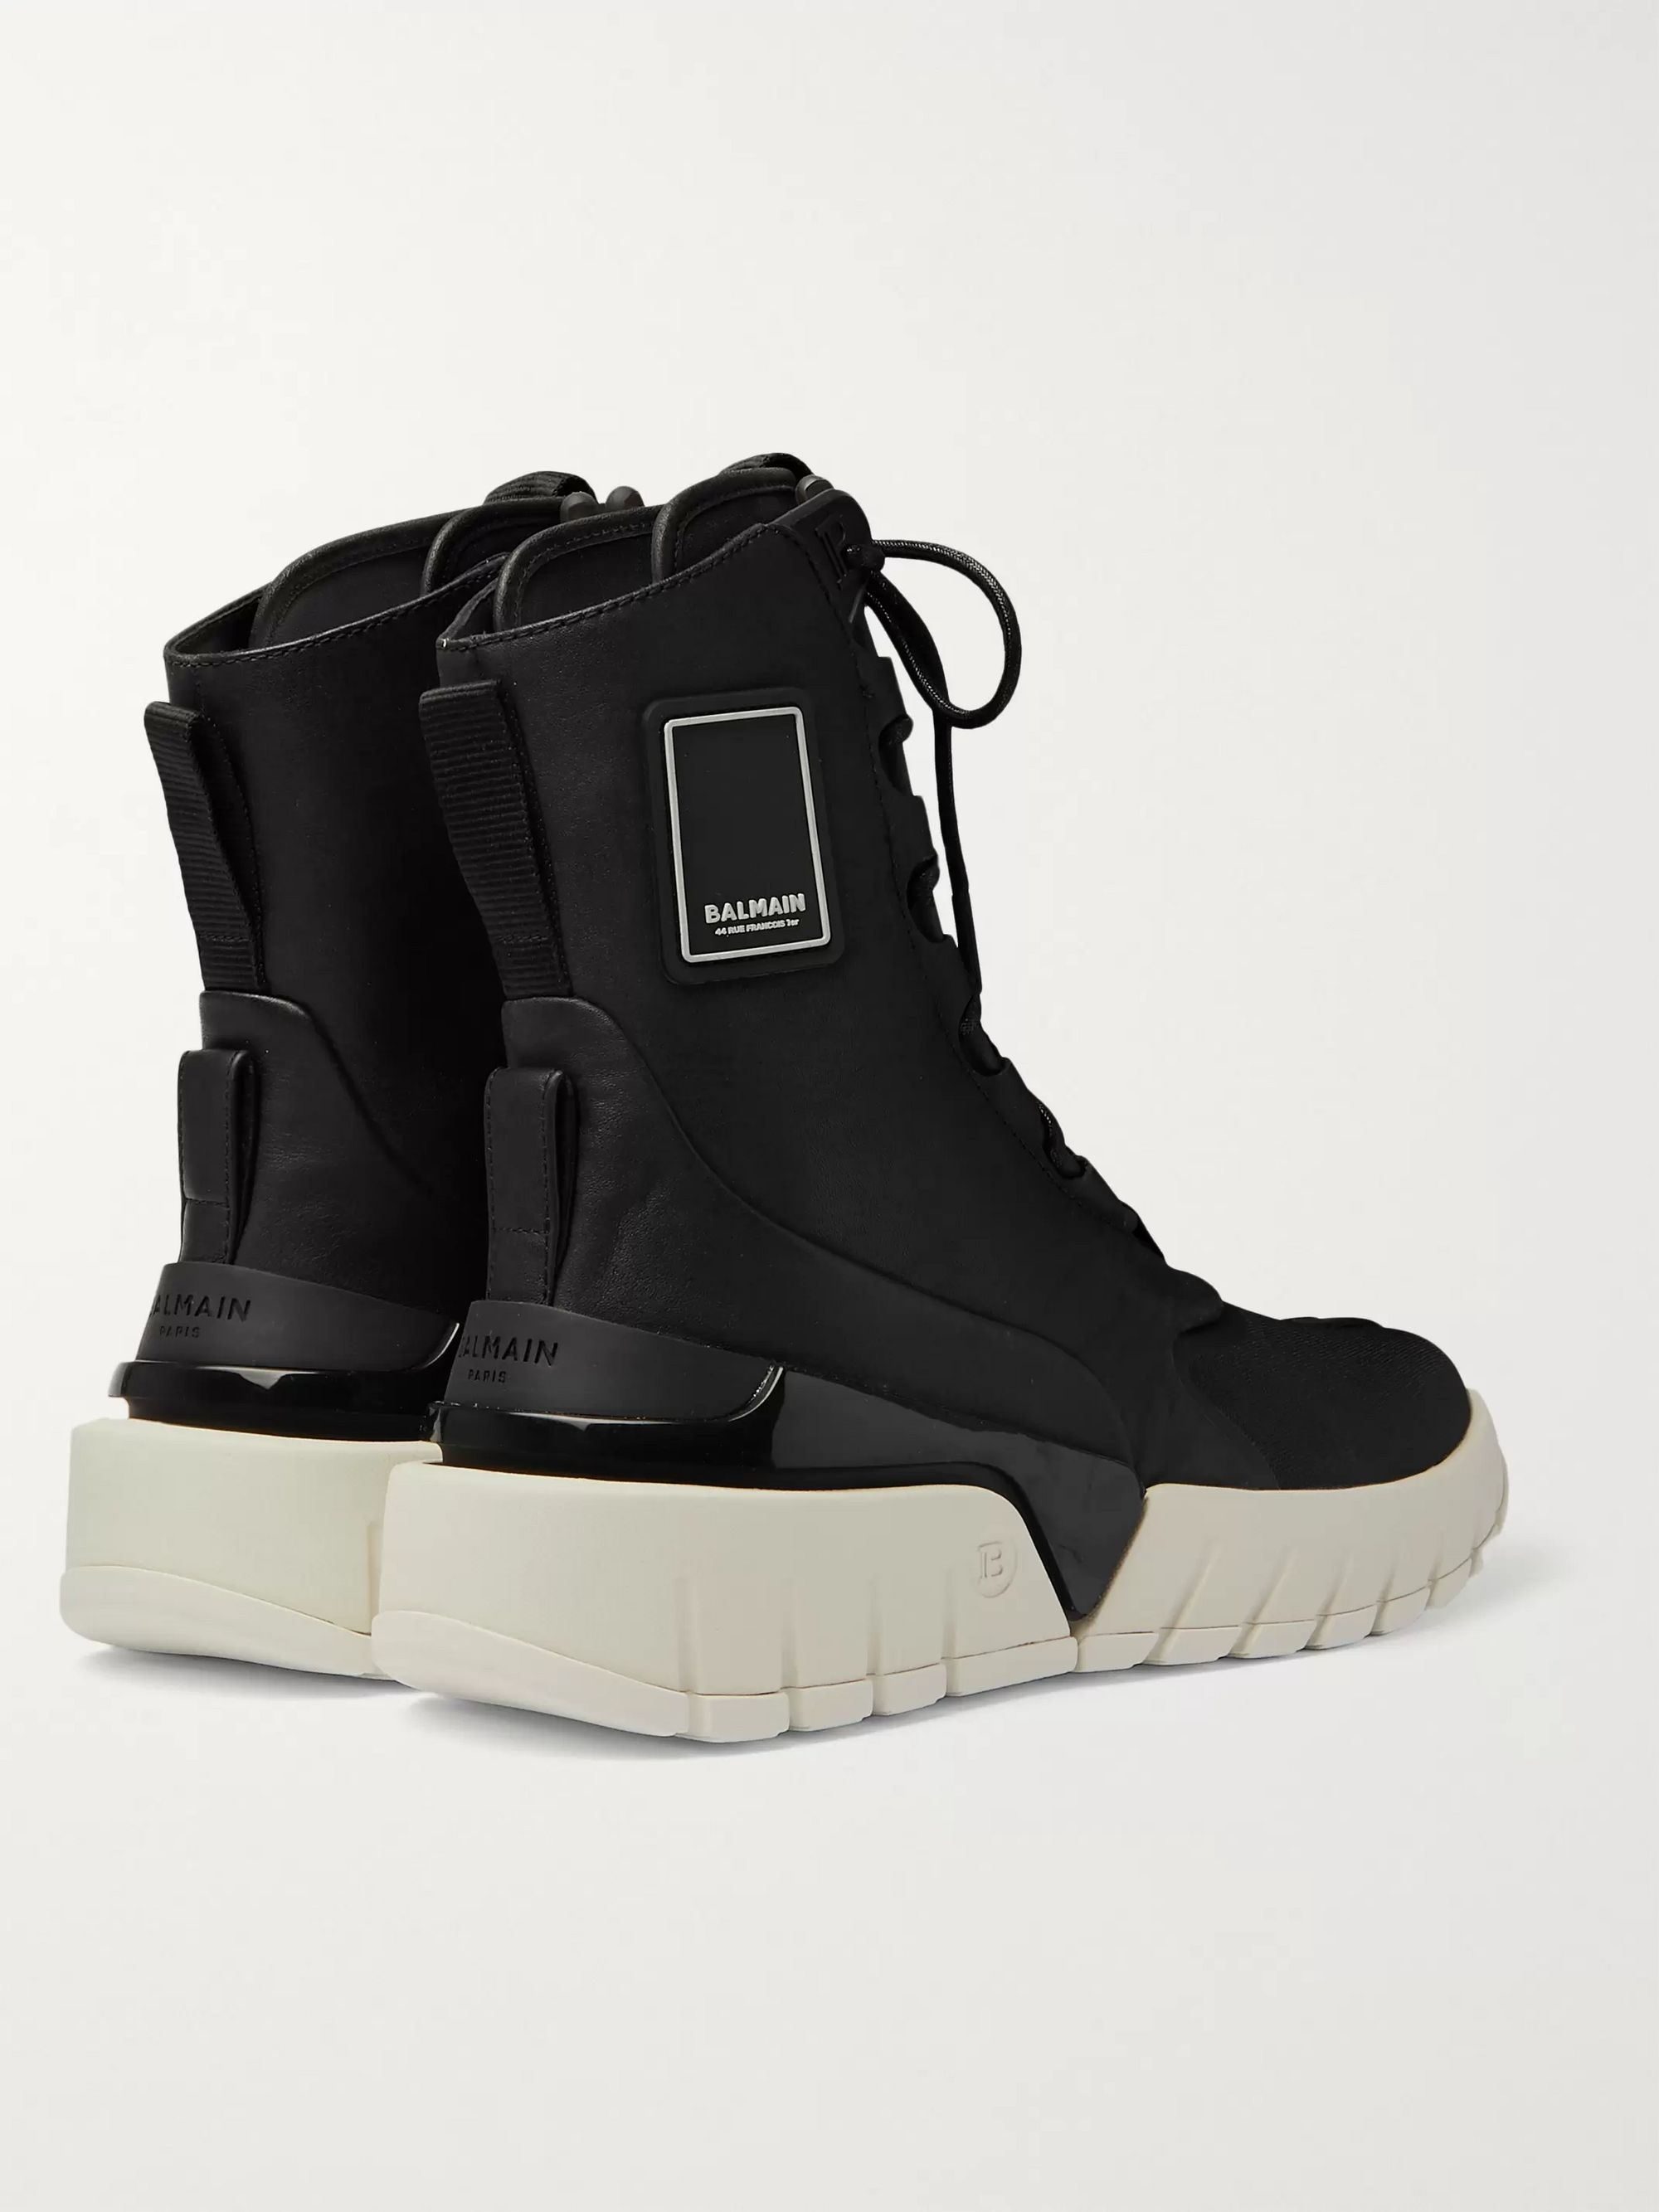 Black B-army Leather And Canvas High-top Sneakers | Balmain